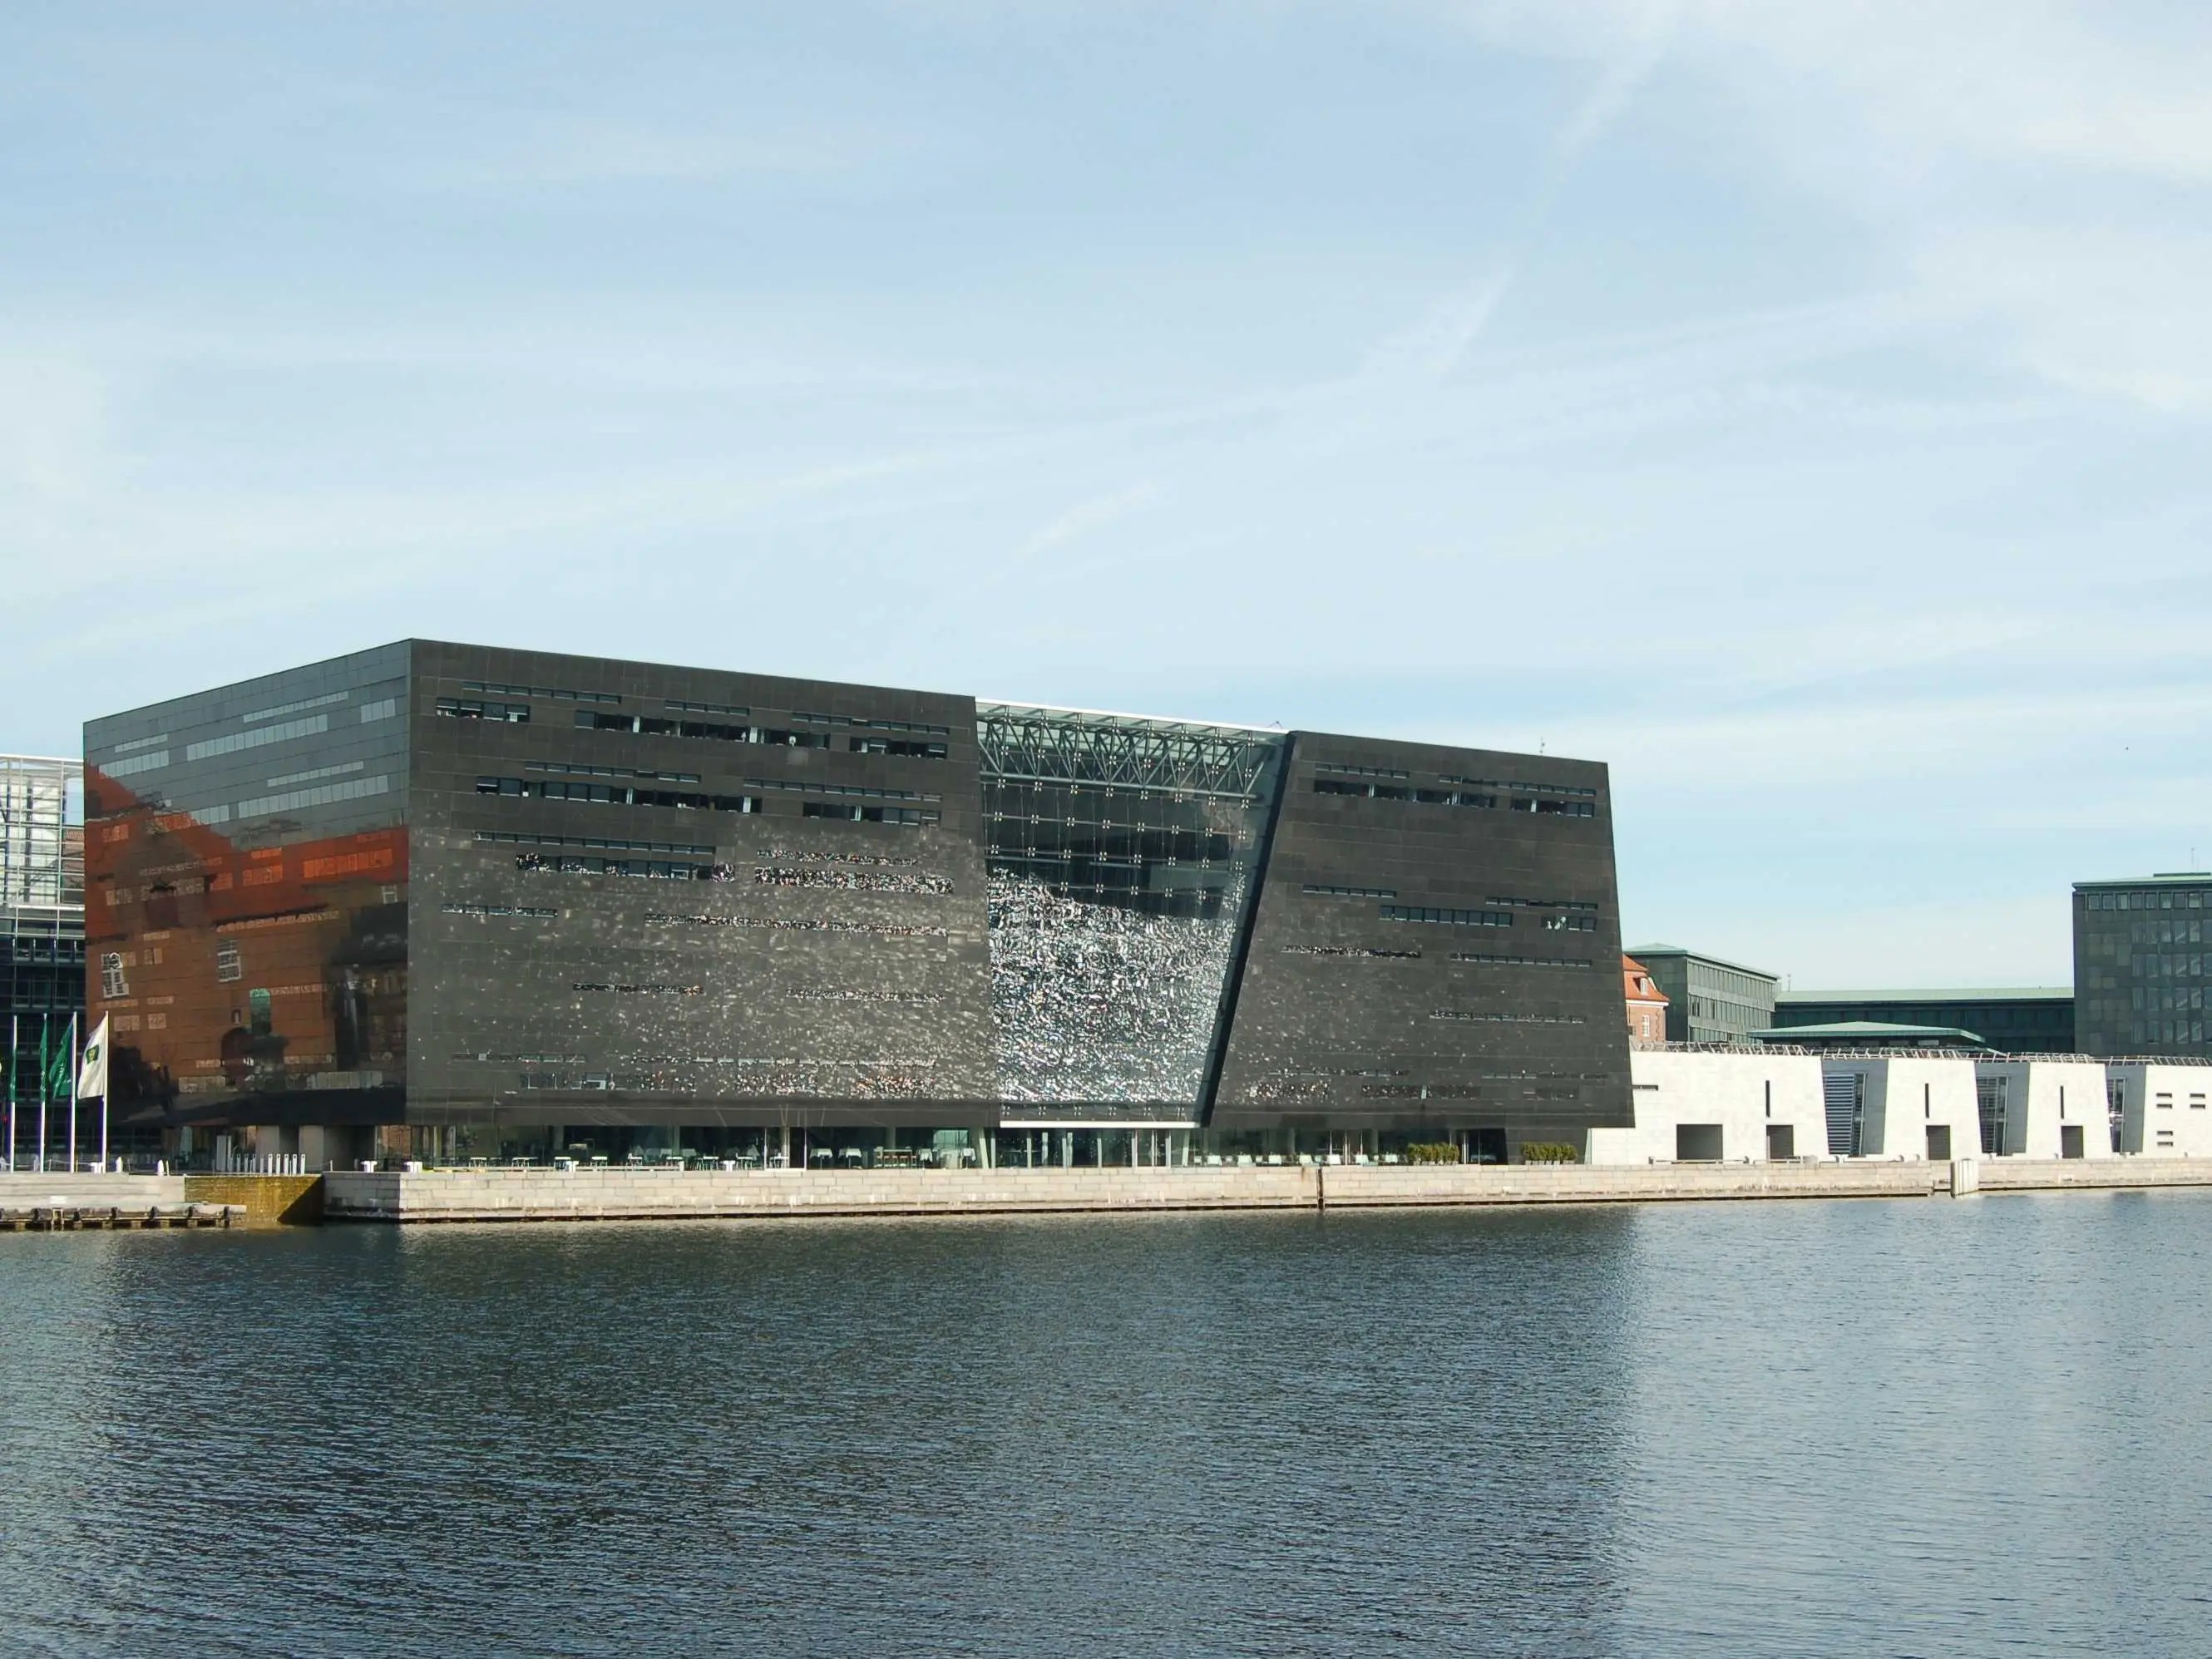 Best Libraries From Around The World - The Royal Library of Copenhagen